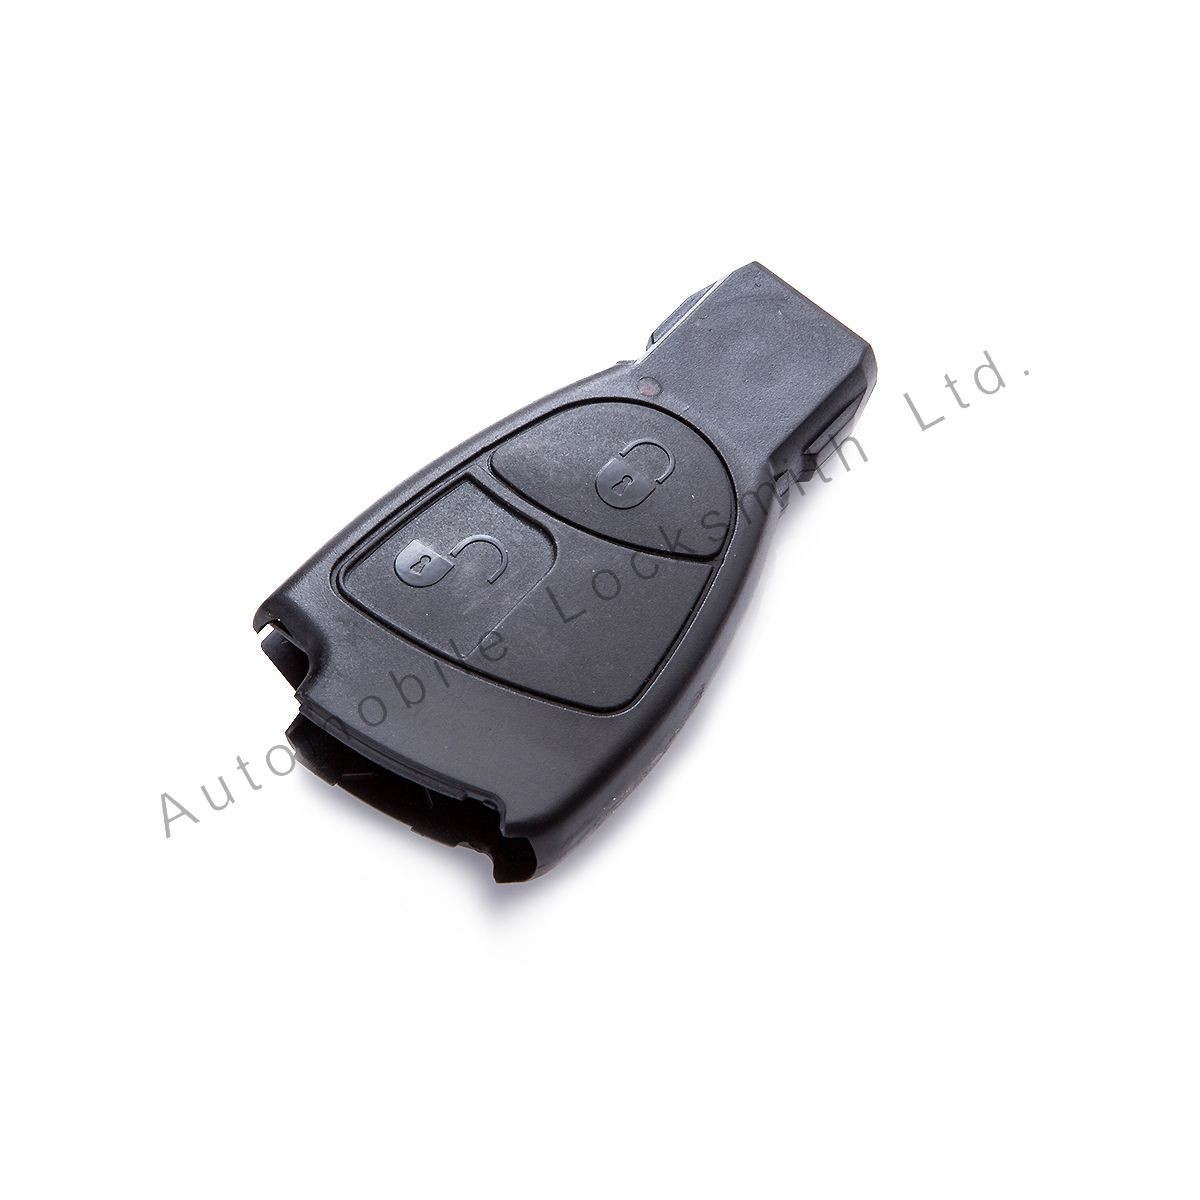 Smart key case shell for Mercedes Benz 2 button remote key